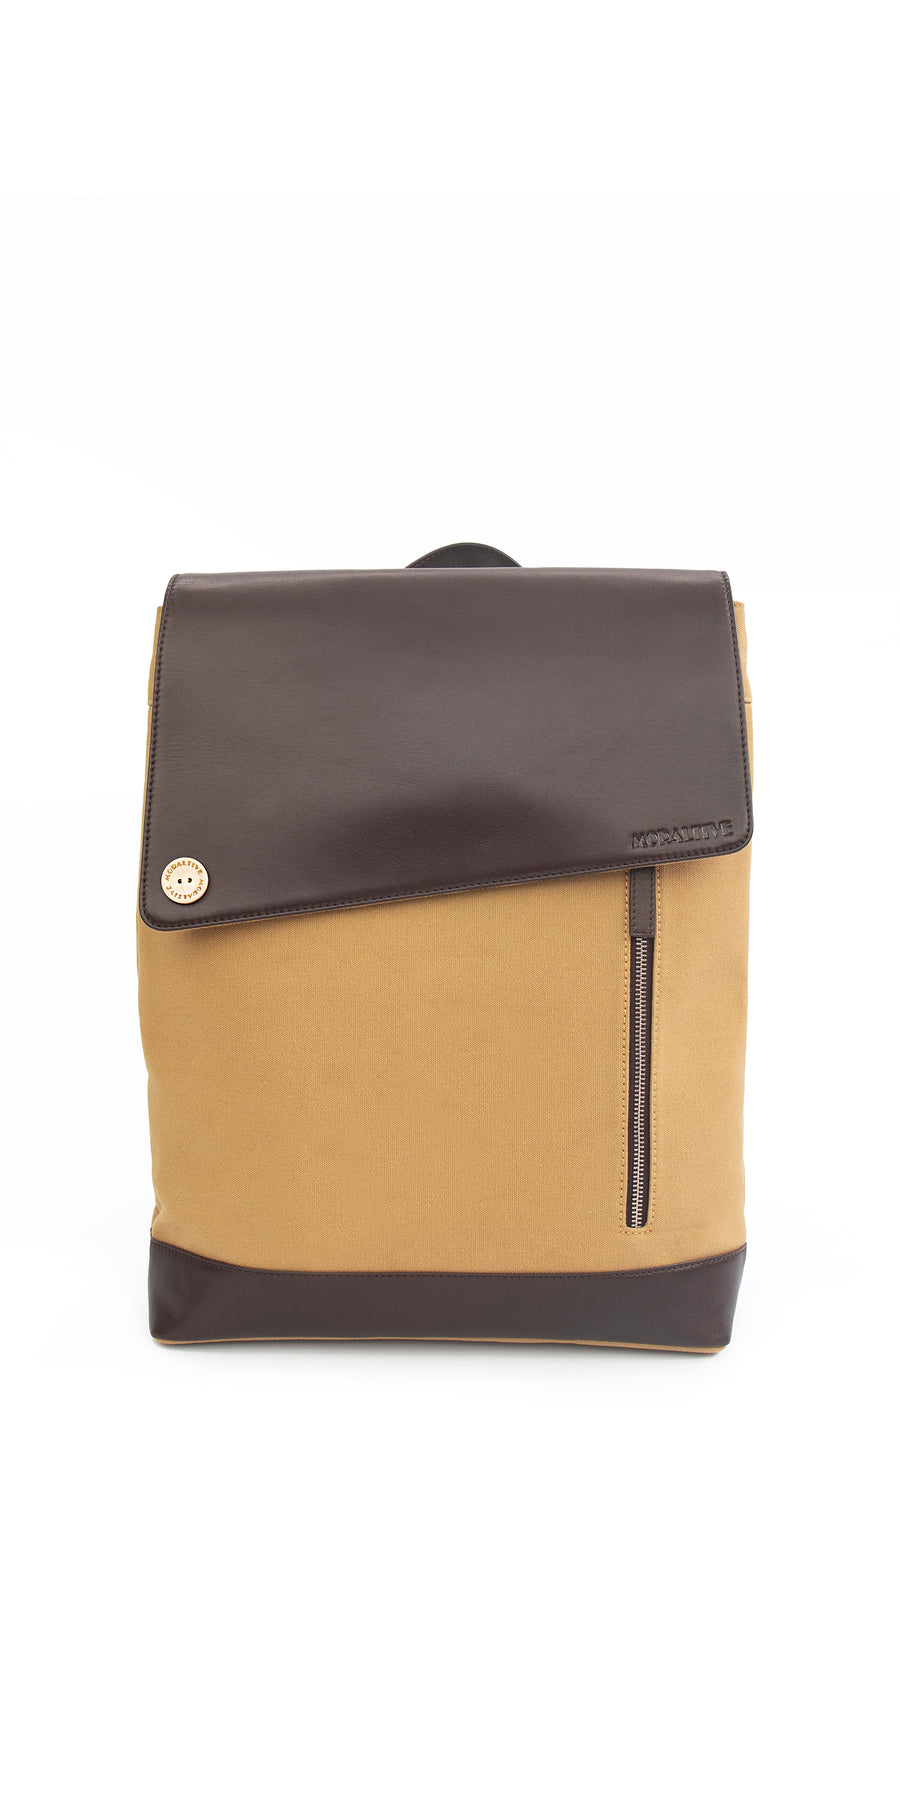 Moraltive Rucksacks - Khakhi & Brown